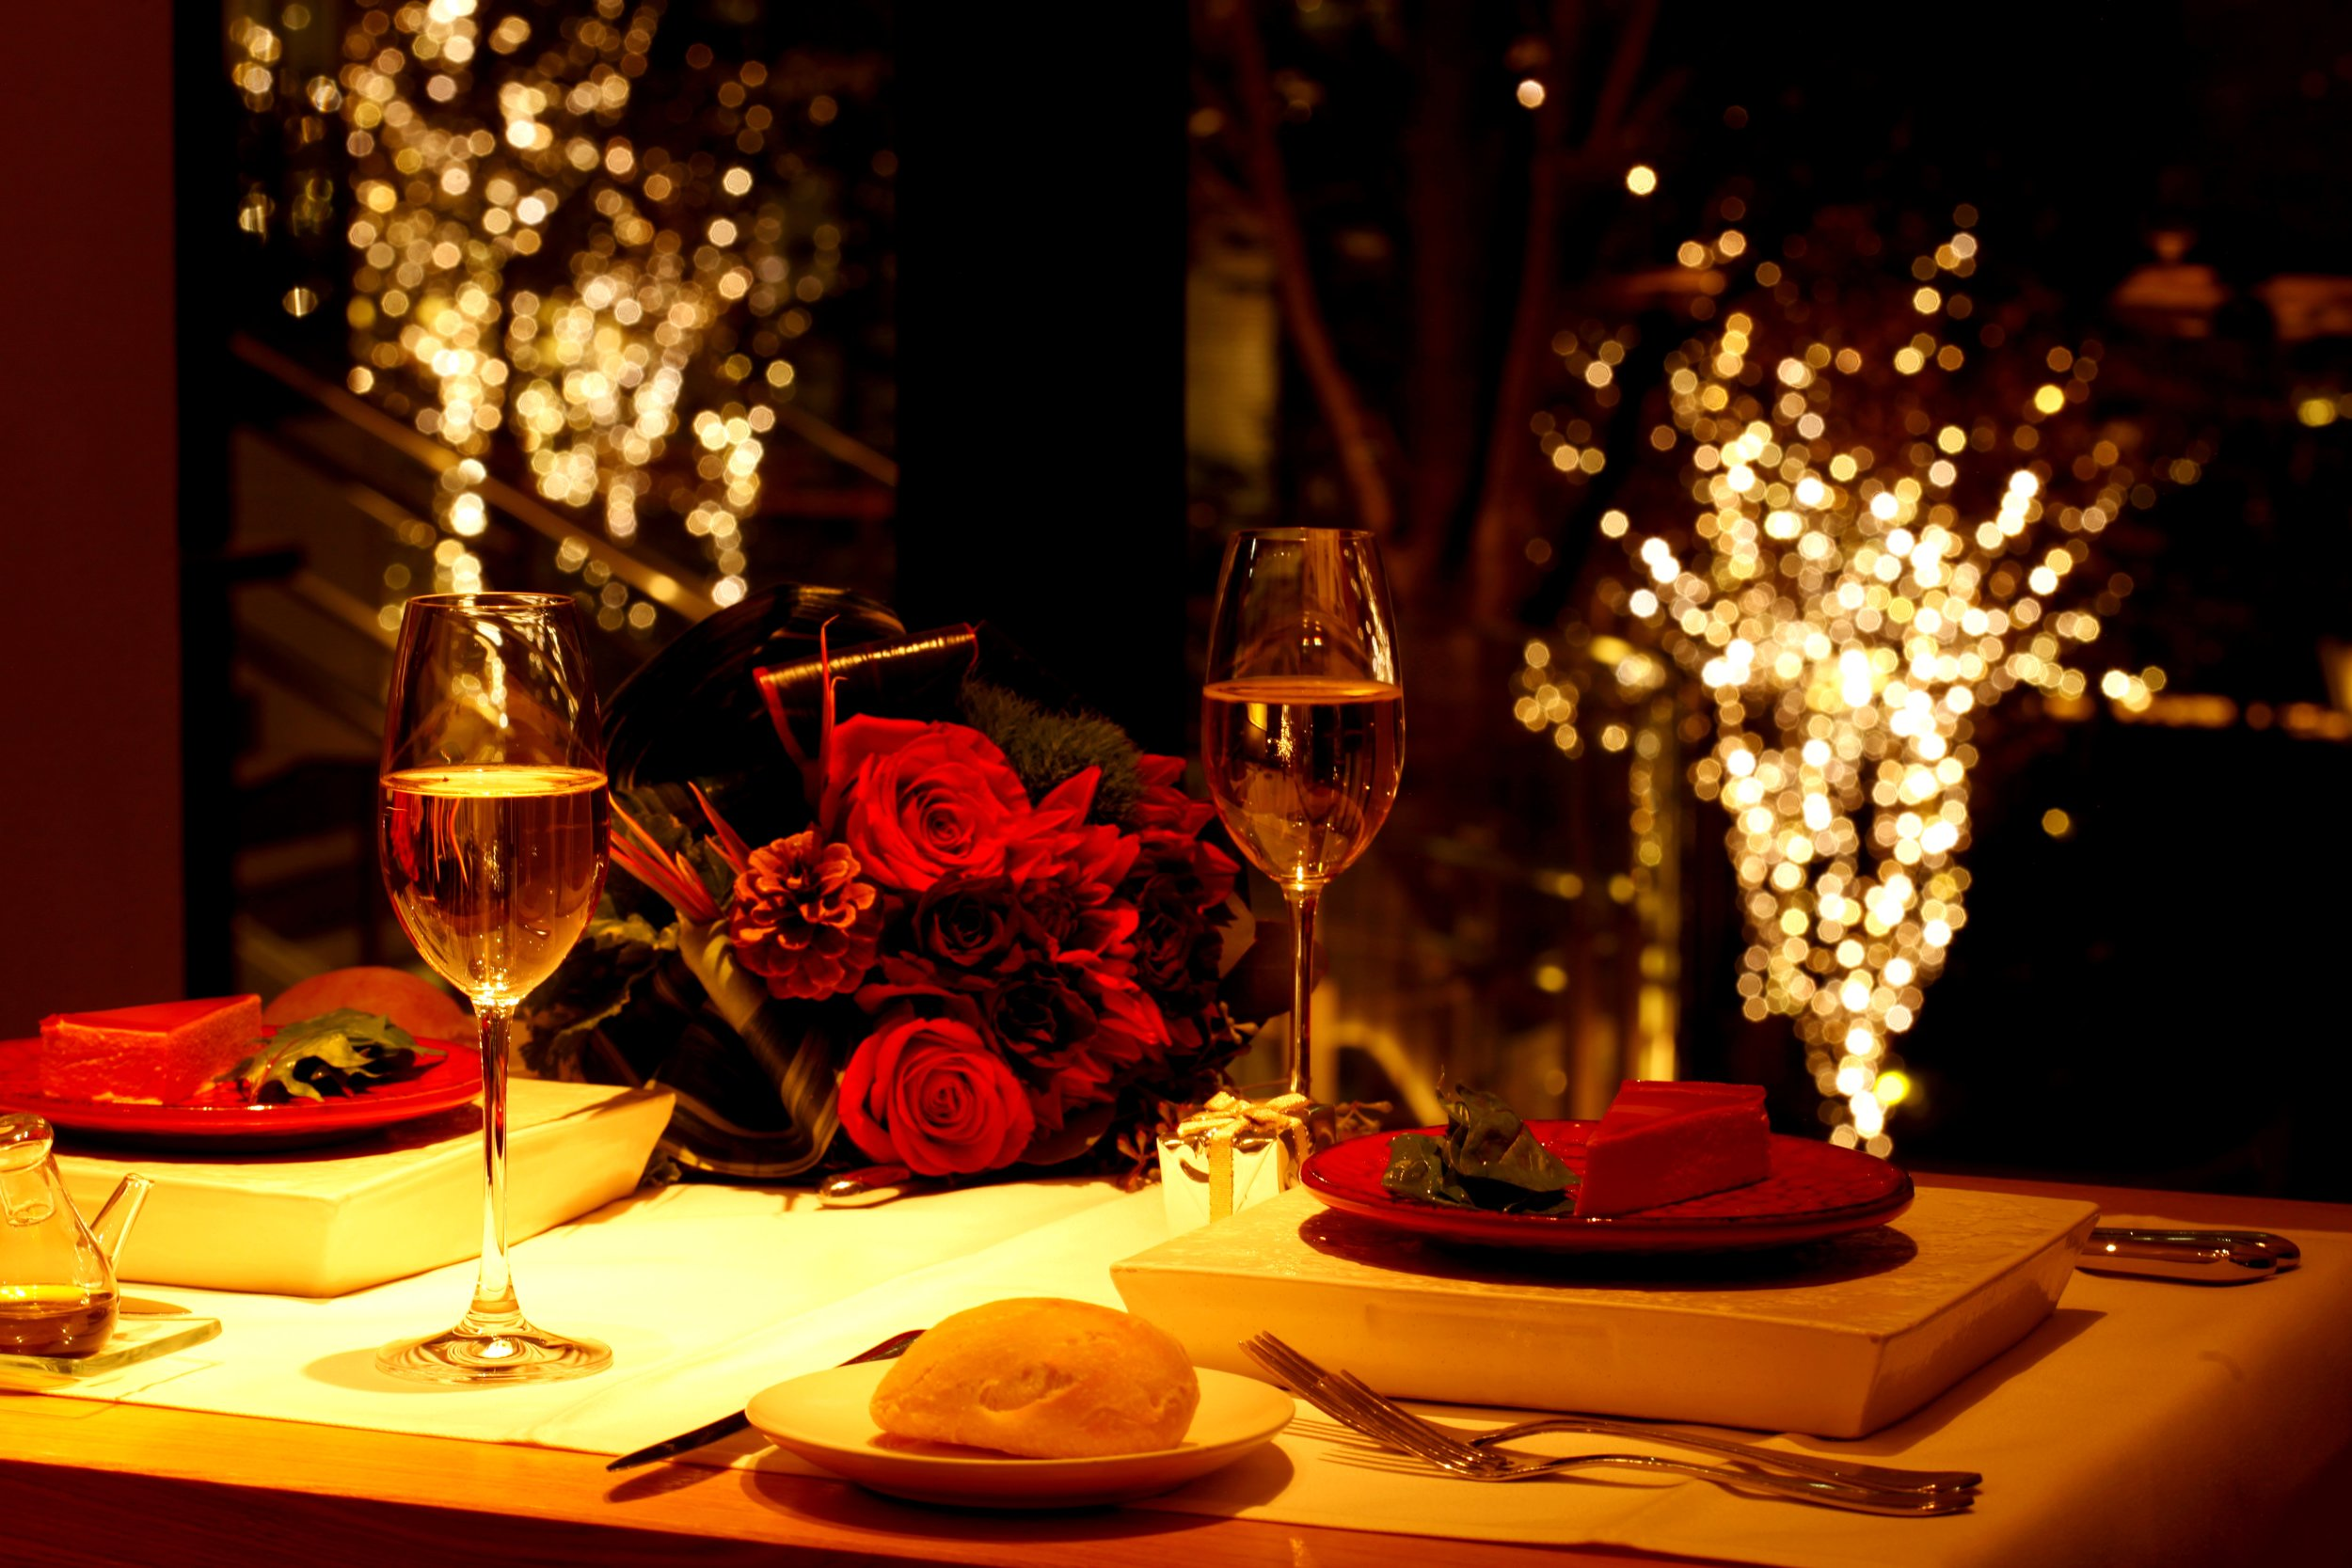 Inspirational-Romantic-Dinner-Decoration-Ideas-66-With-Additional-Home-Design-Interior-with-Romantic-Dinner-Decoration-Ideas.jpg